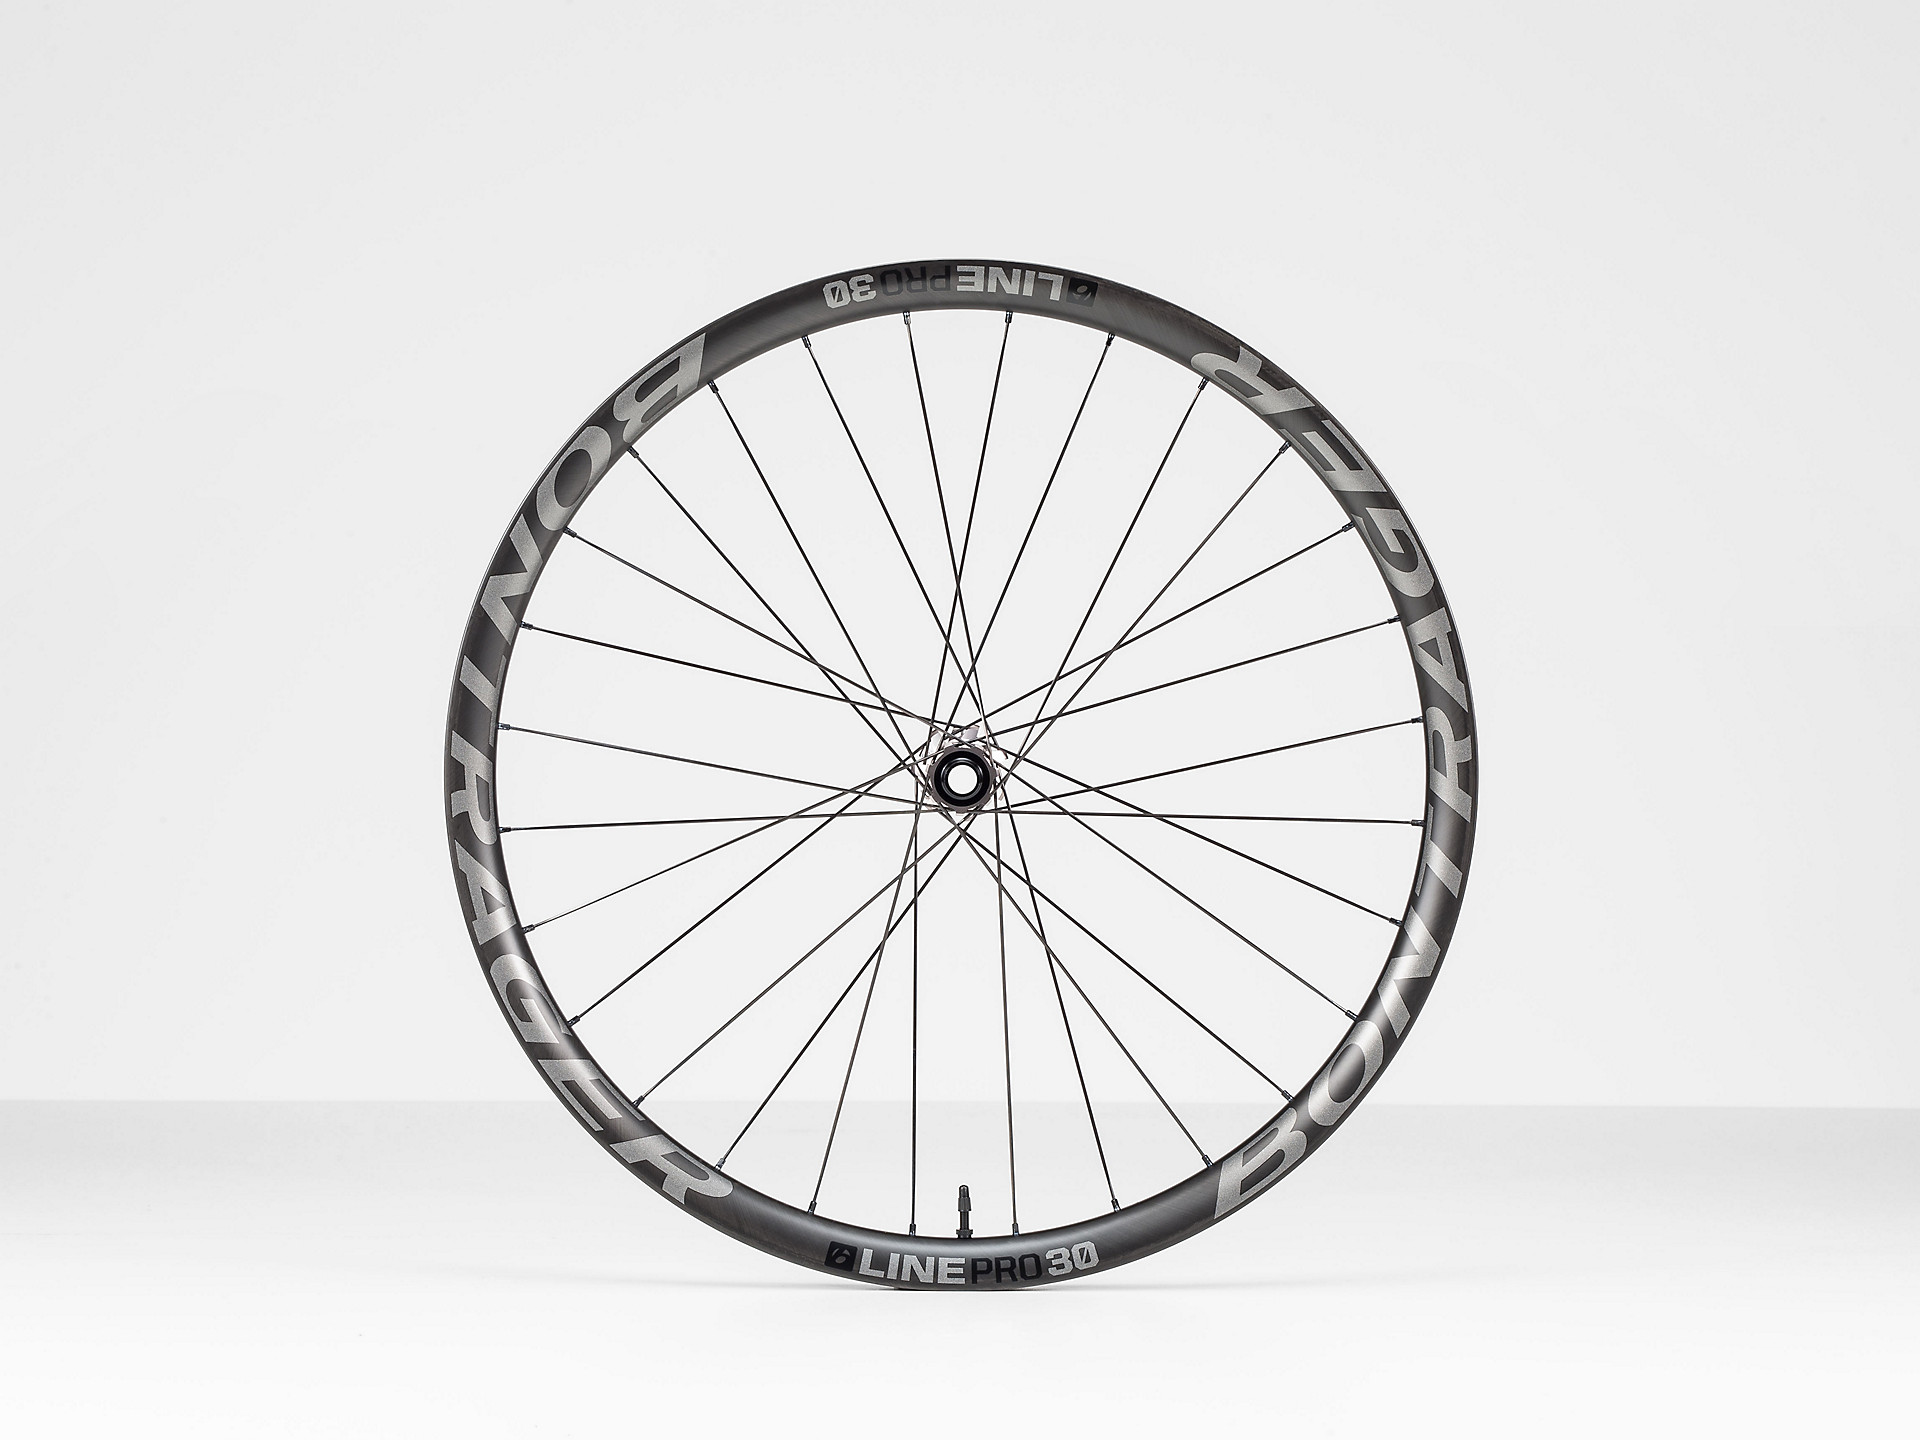 Mountain Bike Wheels Trek Bikes